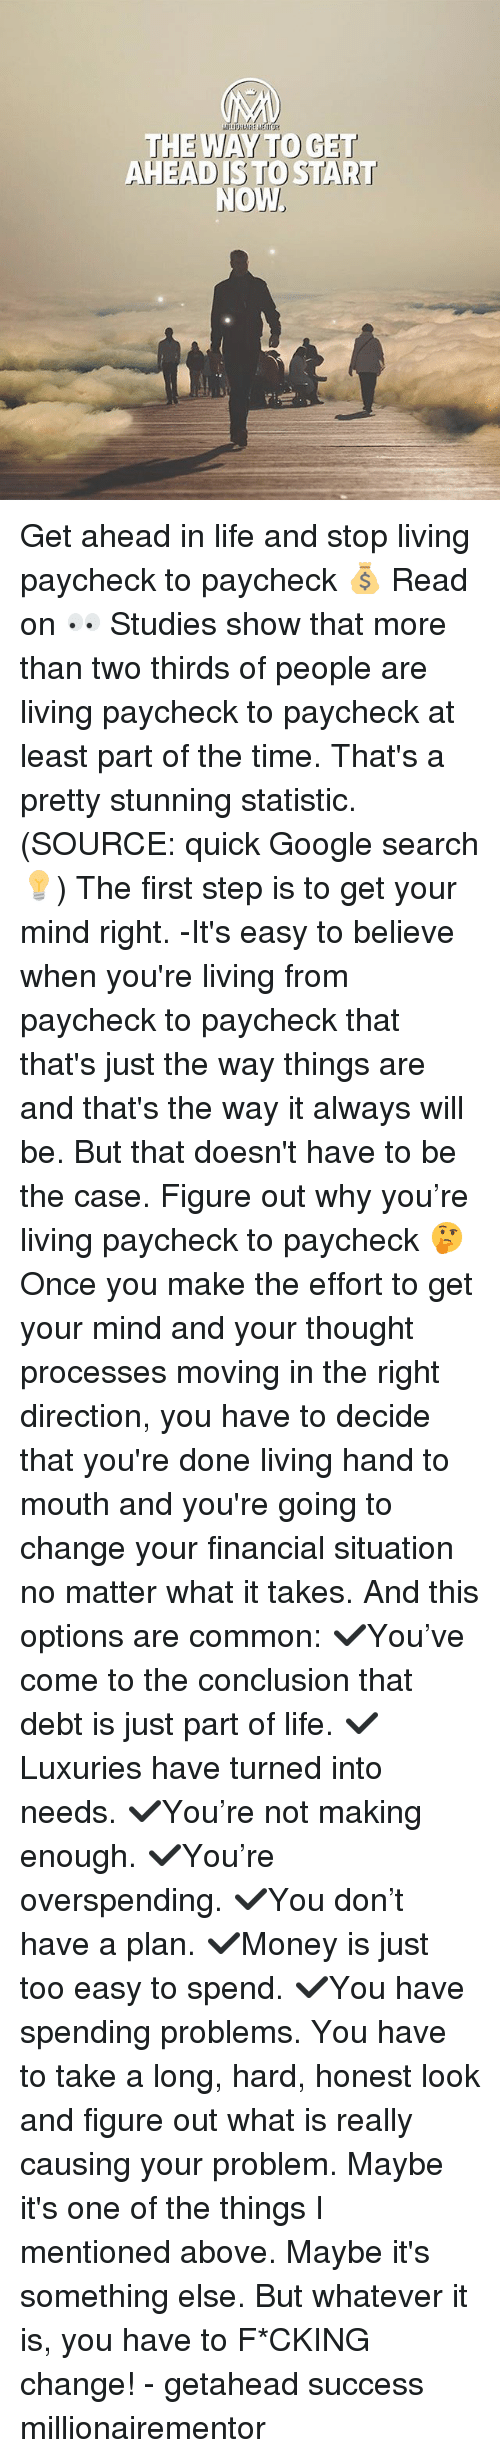 moving in: THE WAY TO GET  AHEAD ISTO START Get ahead in life and stop living paycheck to paycheck 💰 Read on 👀 Studies show that more than two thirds of people are living paycheck to paycheck at least part of the time. That's a pretty stunning statistic. (SOURCE: quick Google search💡) The first step is to get your mind right. -It's easy to believe when you're living from paycheck to paycheck that that's just the way things are and that's the way it always will be. But that doesn't have to be the case. Figure out why you're living paycheck to paycheck 🤔 Once you make the effort to get your mind and your thought processes moving in the right direction, you have to decide that you're done living hand to mouth and you're going to change your financial situation no matter what it takes. And this options are common: ✔️You've come to the conclusion that debt is just part of life. ✔️Luxuries have turned into needs. ✔️You're not making enough. ✔️You're overspending. ✔️You don't have a plan. ✔️Money is just too easy to spend. ✔️You have spending problems. You have to take a long, hard, honest look and figure out what is really causing your problem. Maybe it's one of the things I mentioned above. Maybe it's something else. But whatever it is, you have to F*CKING change! - getahead success millionairementor